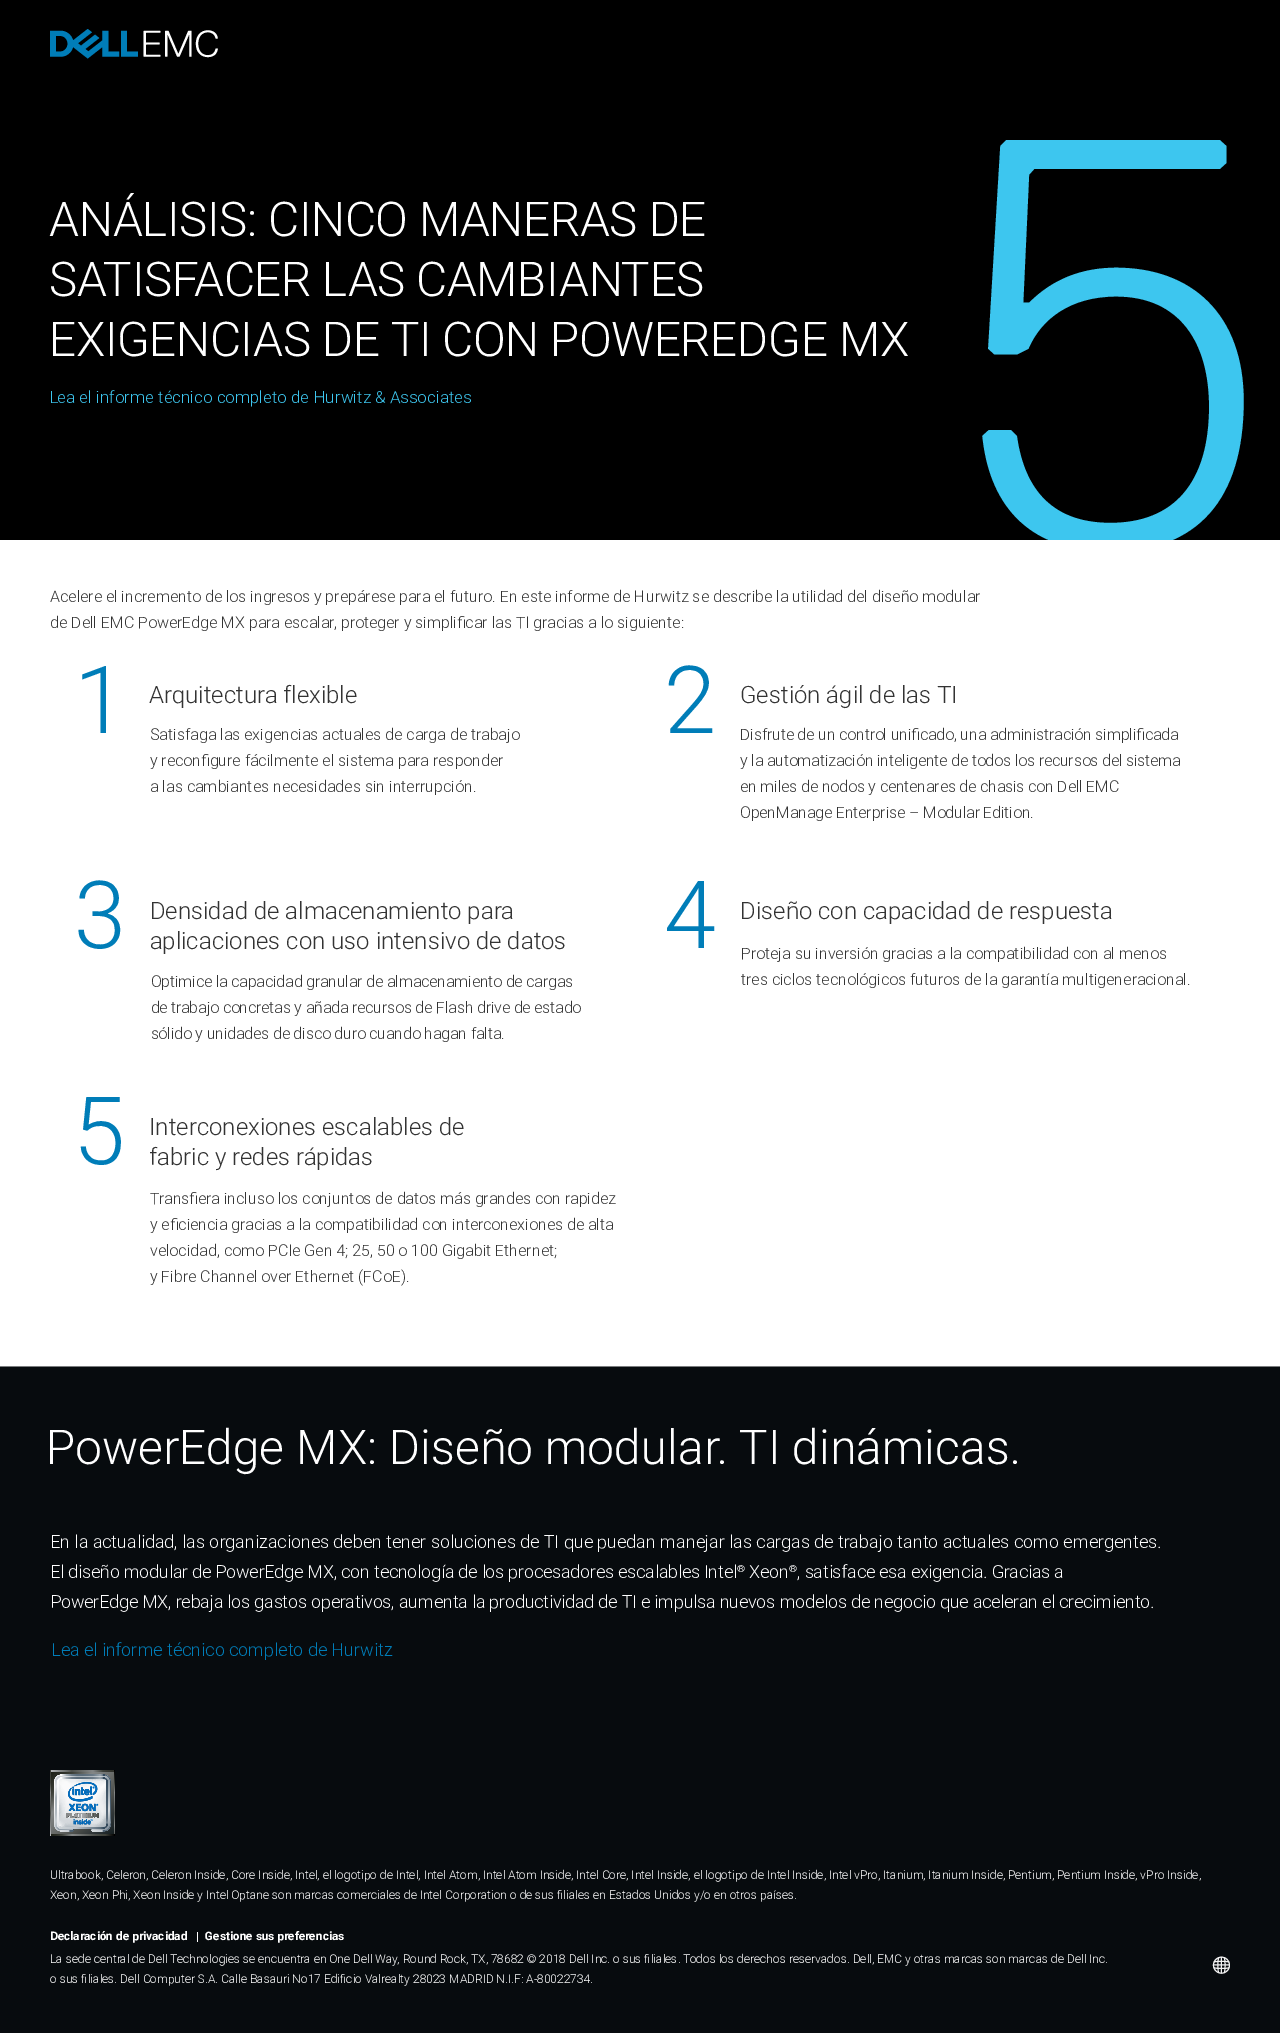 Thumb original dellemc 5 ways poweredge mx meets changing it demands es